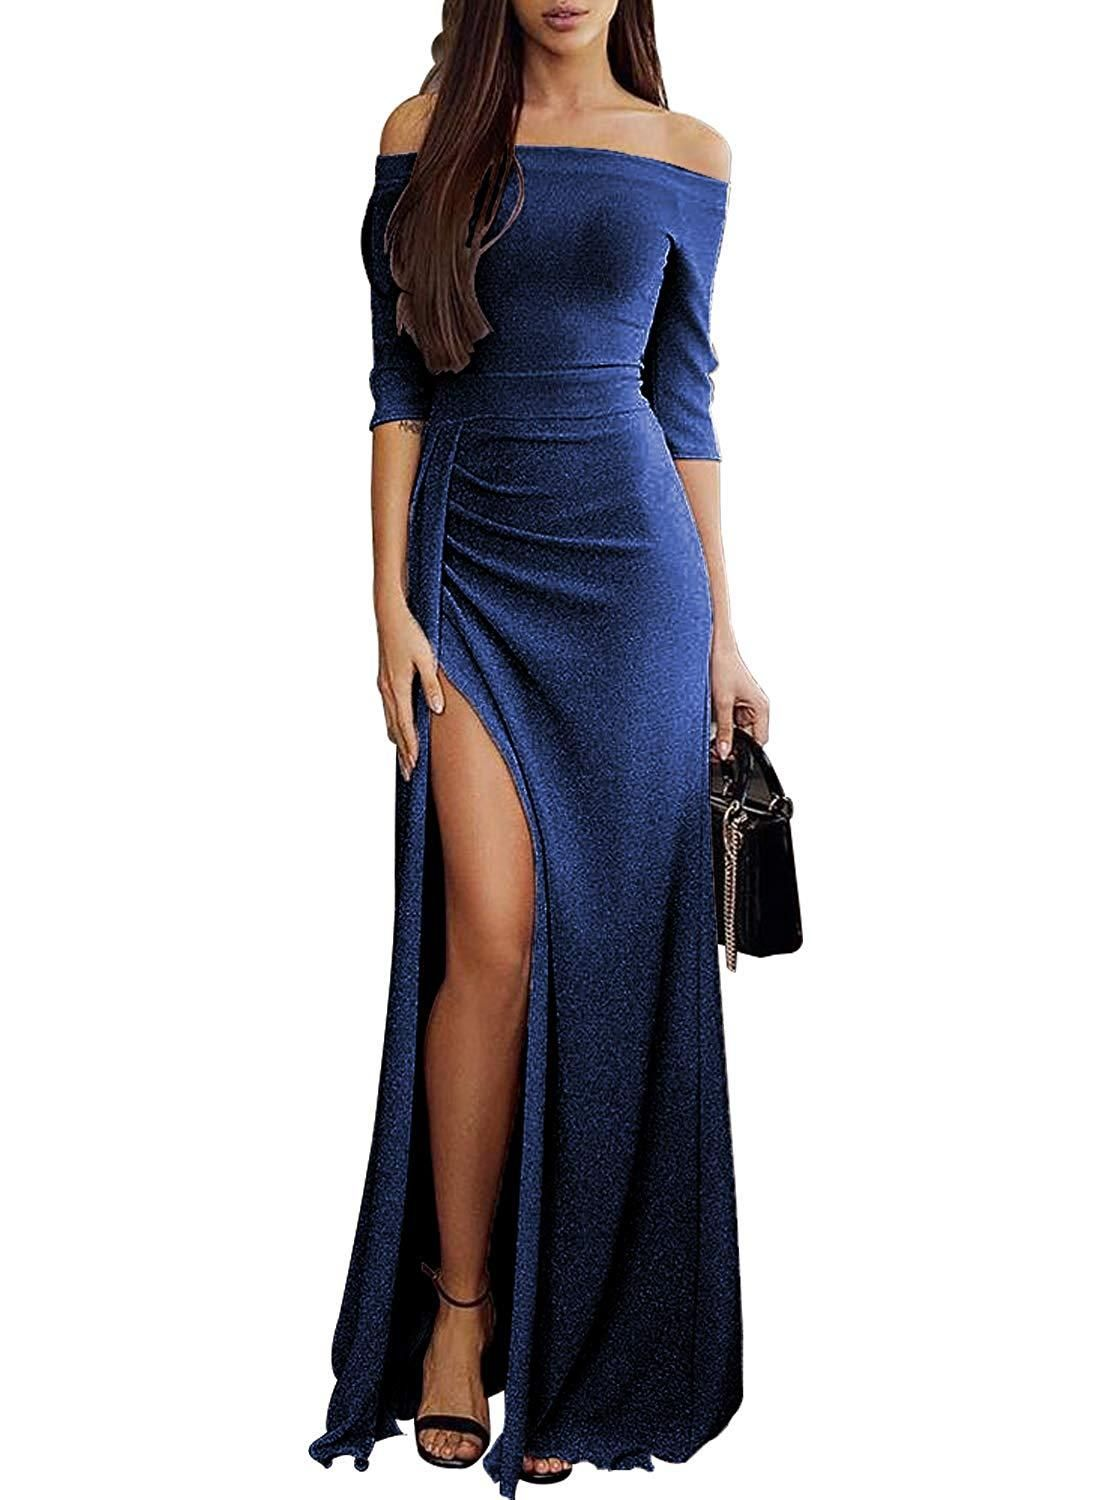 0dd03ff6e3 Happy Sailed Women Off Shoulder Ruched Metallic Knit High Slit Evening  Party Cocktail Dress